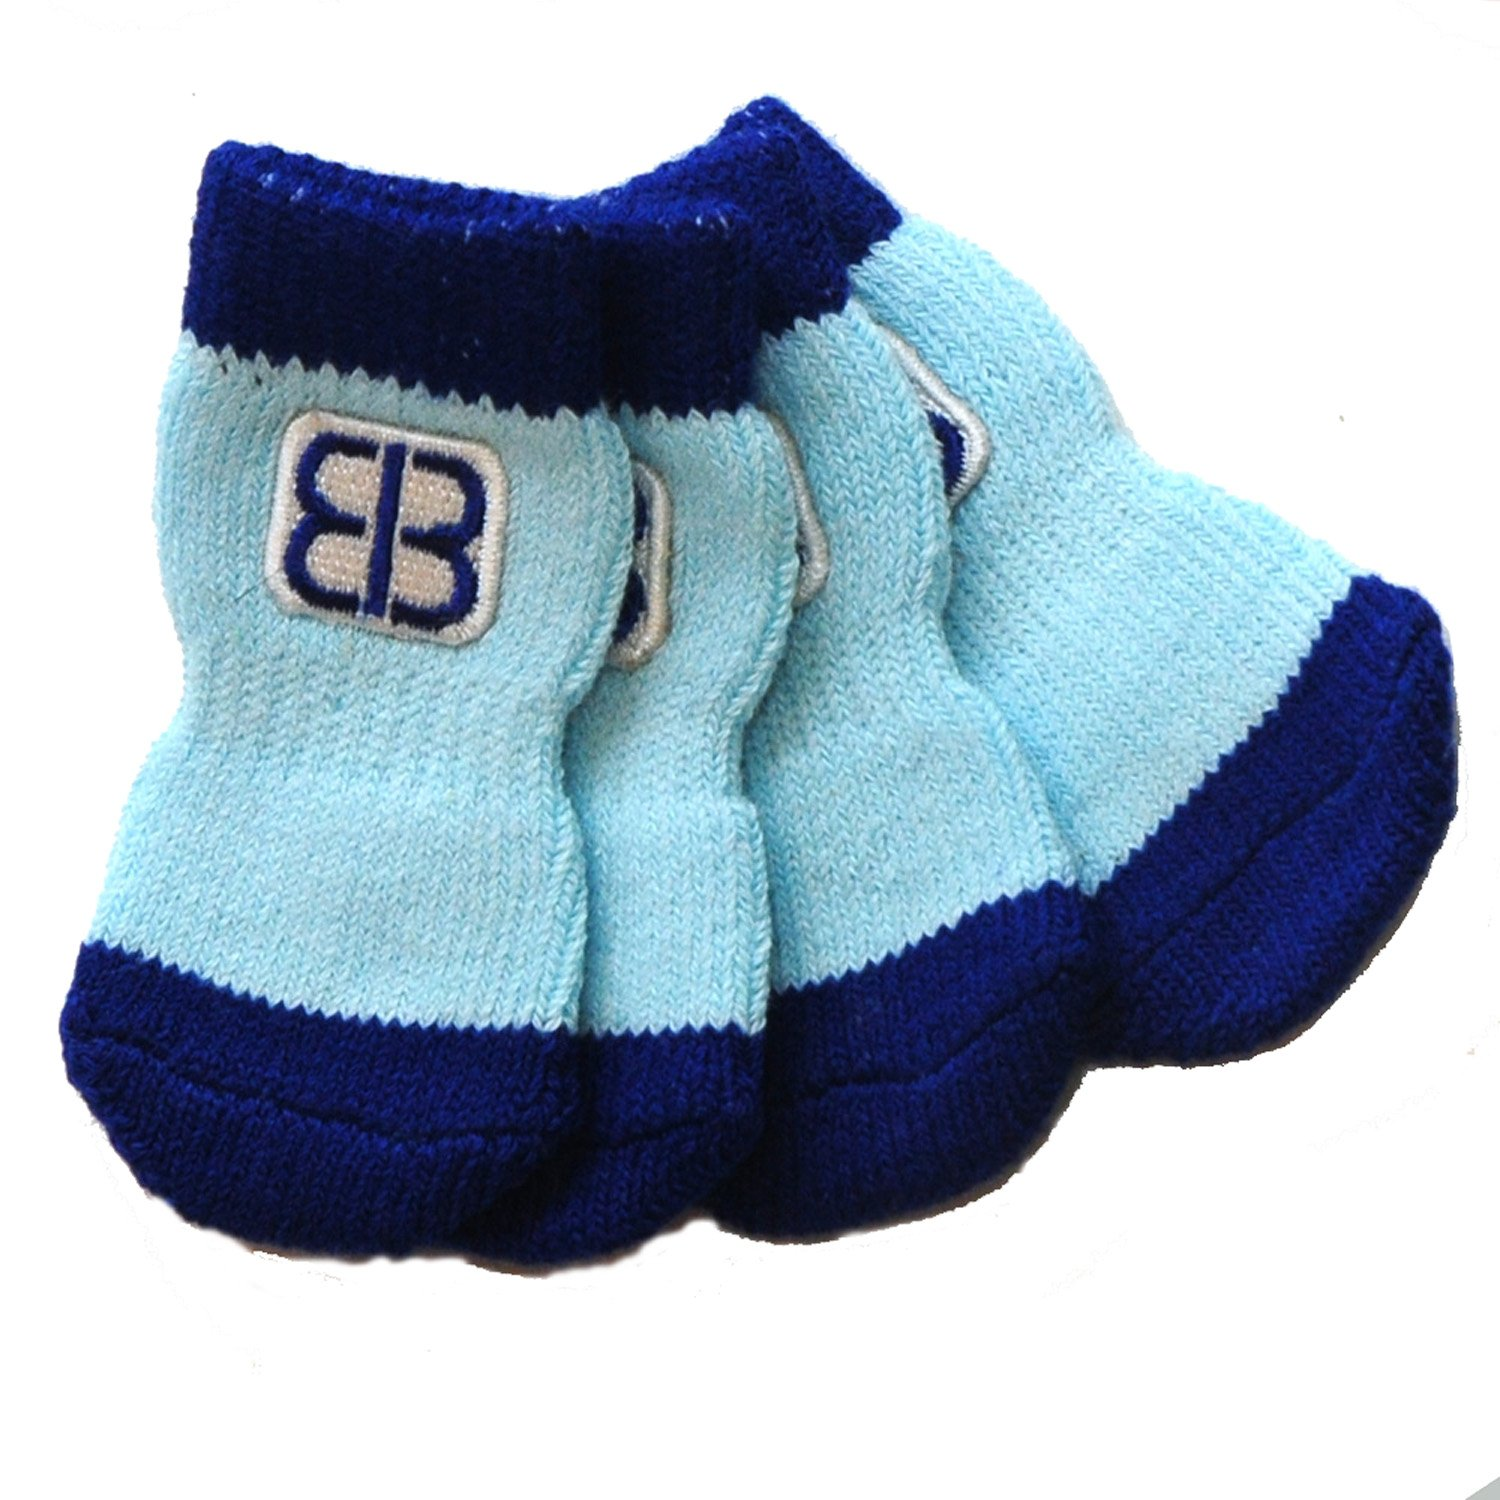 Petego Traction Control Indoor Socks for Dogs, Blue/Light Blue, Small, Set of 4